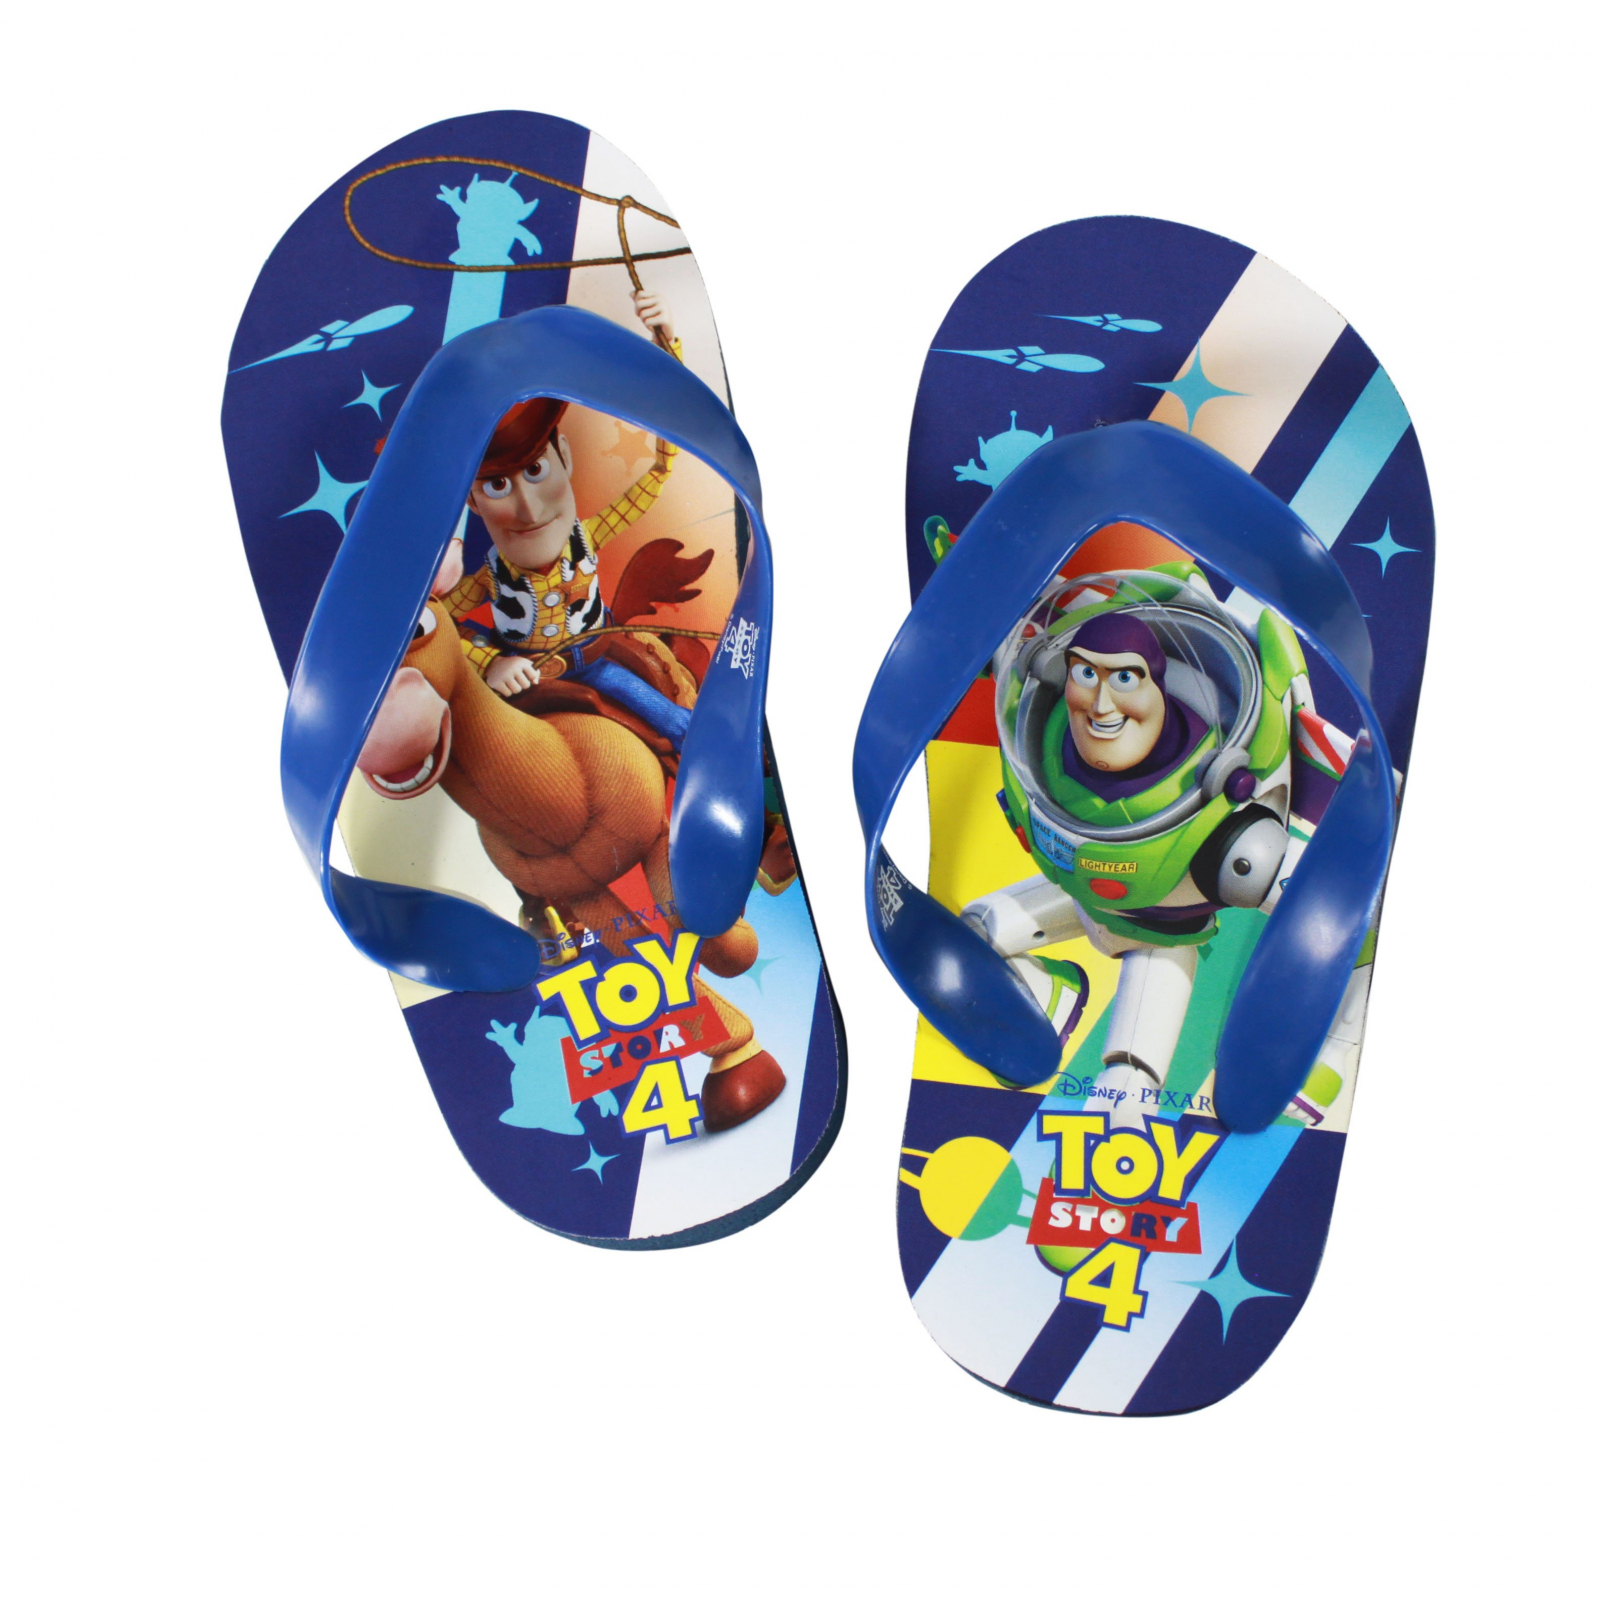 Disney Pixar Toy Story 4 Kids Sandals Blue Strap Medium 7/8